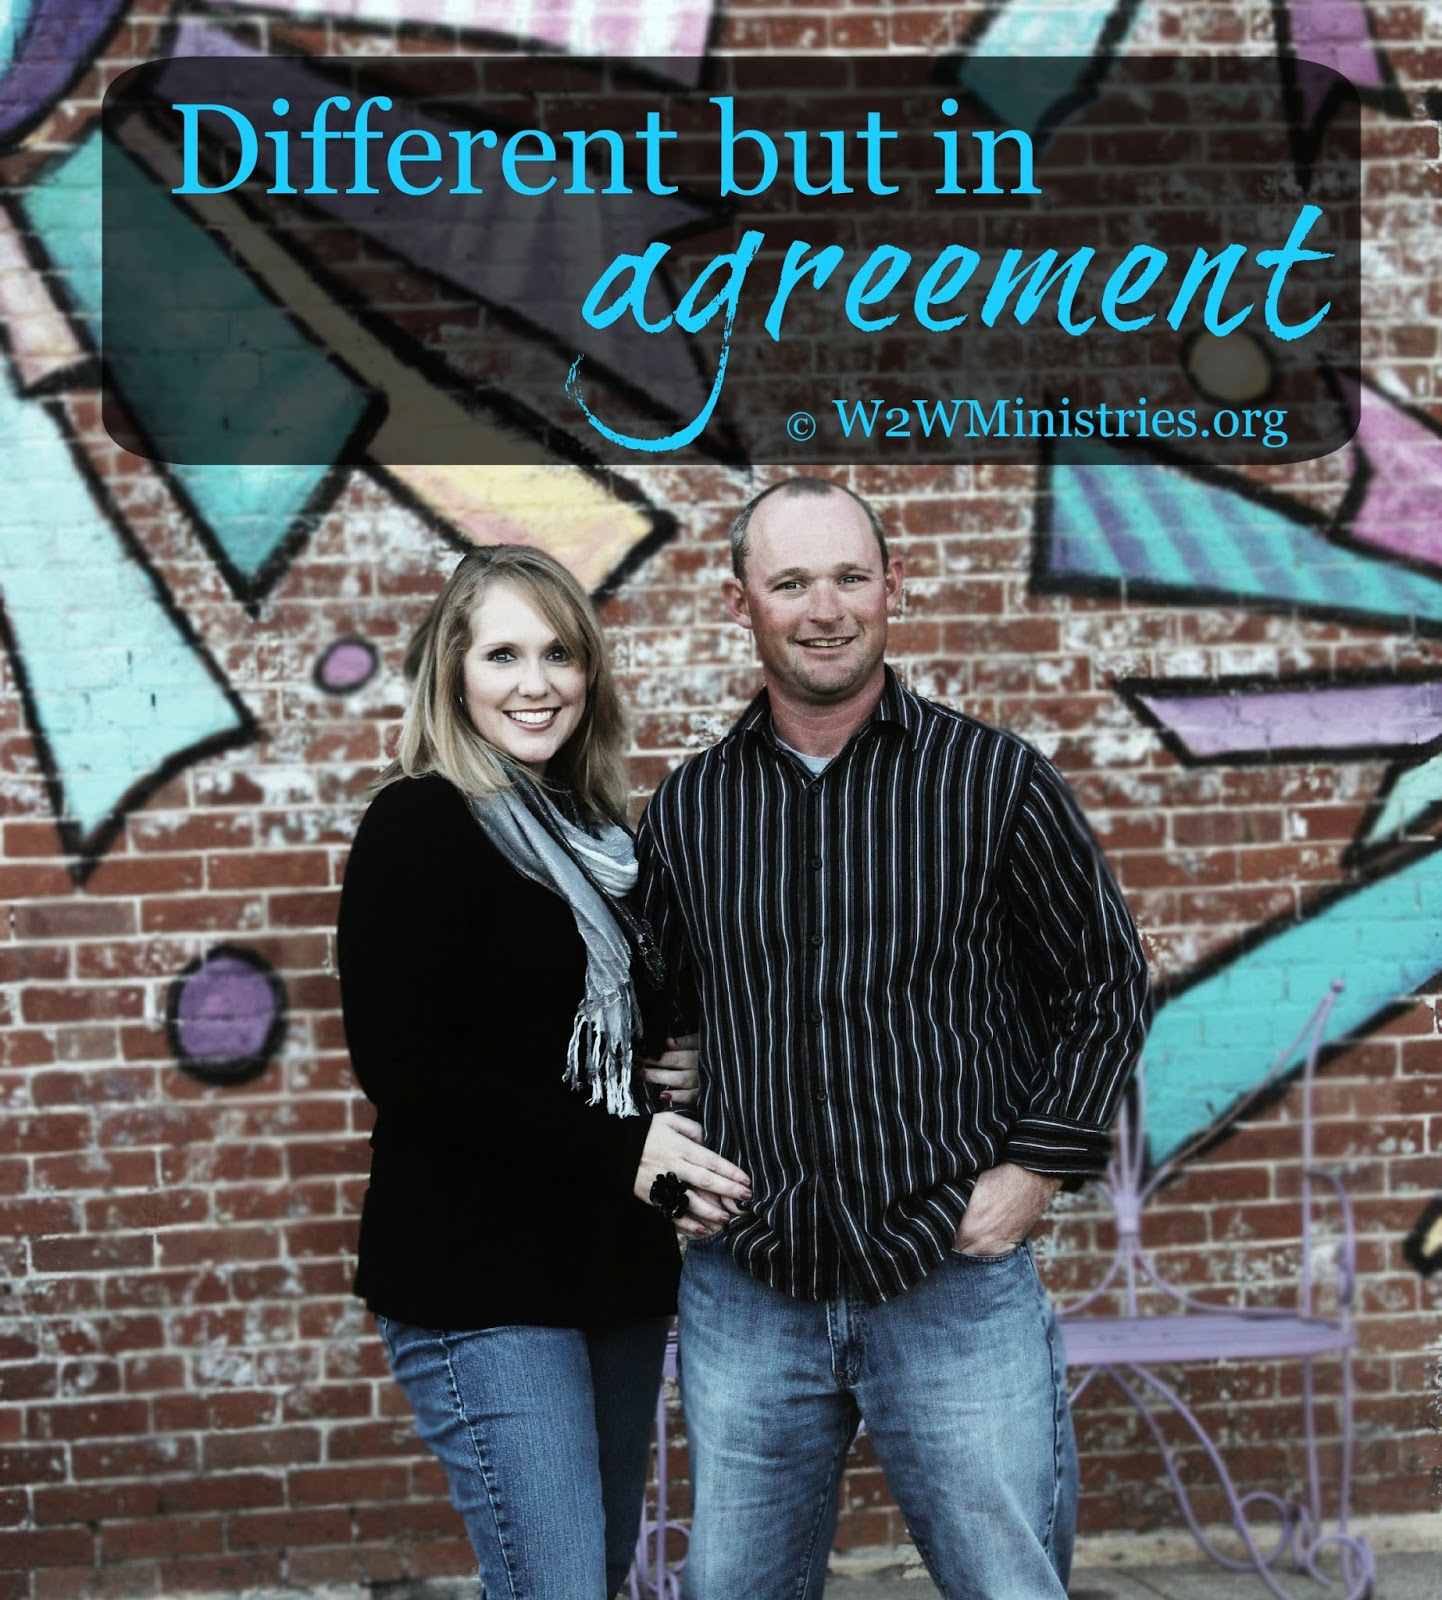 #Marriage Monday - Different but in agreement